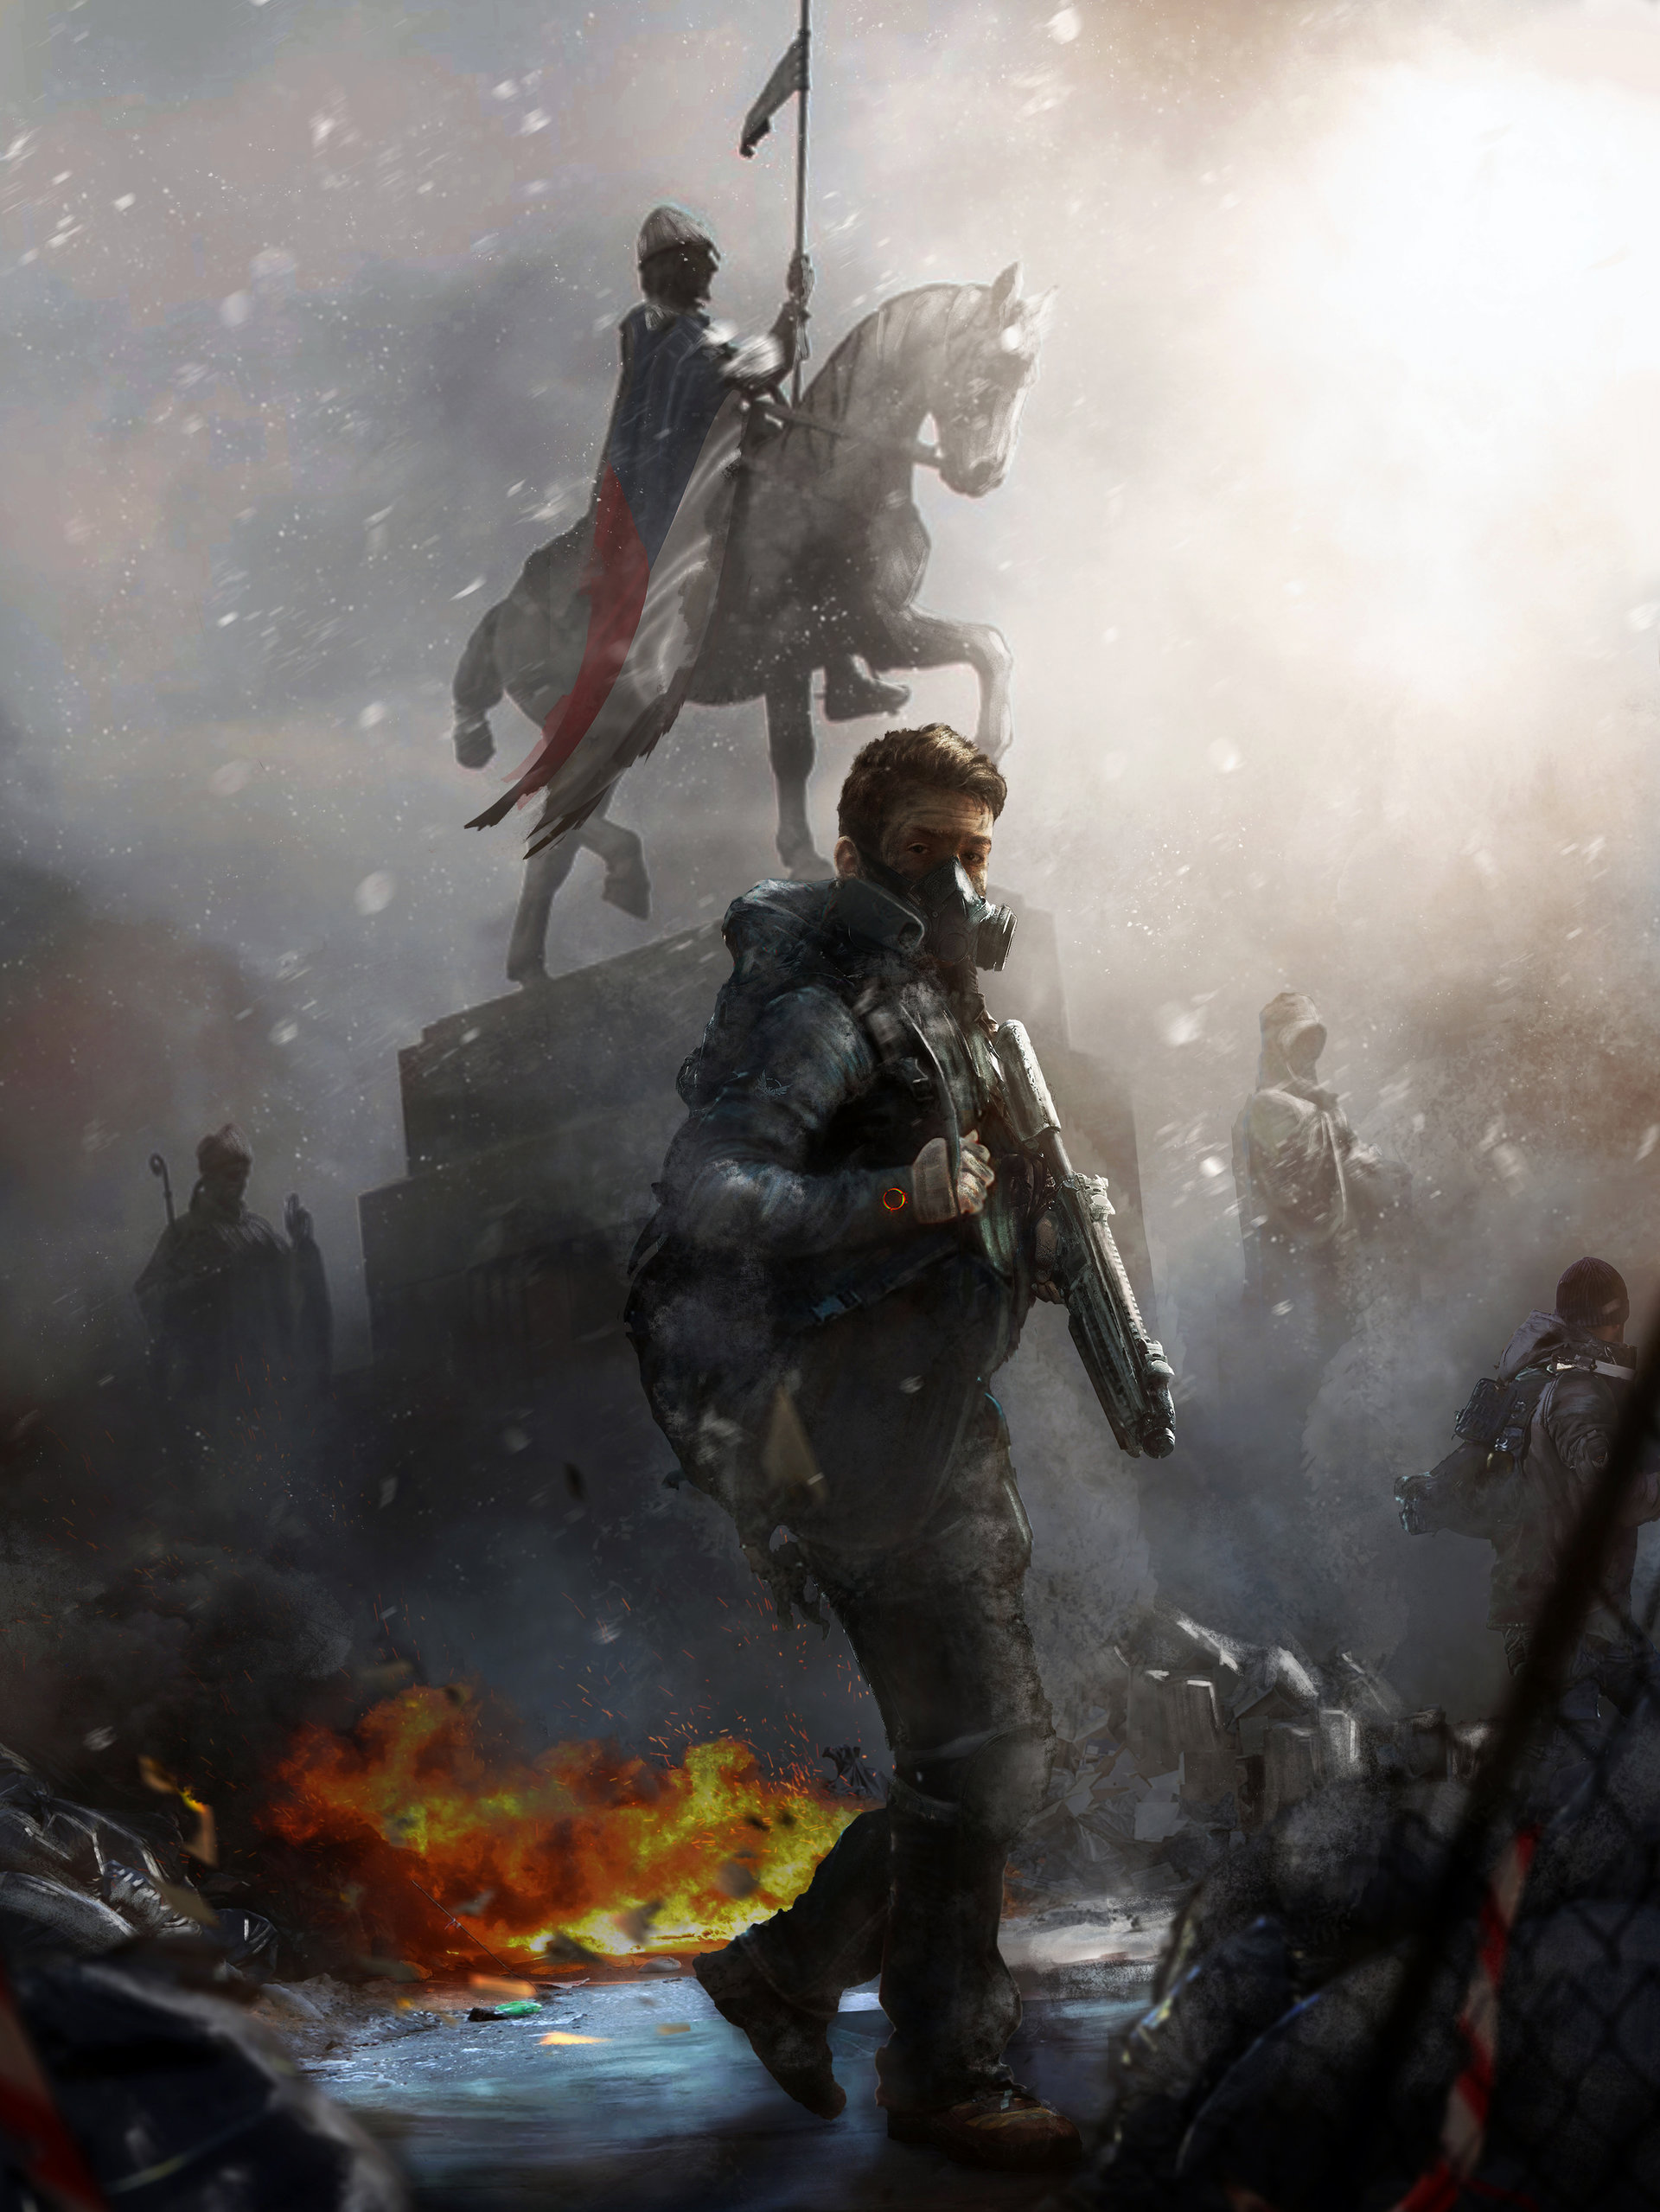 New The Division concept art and screenshots - Gosu Noob Gaming Guides